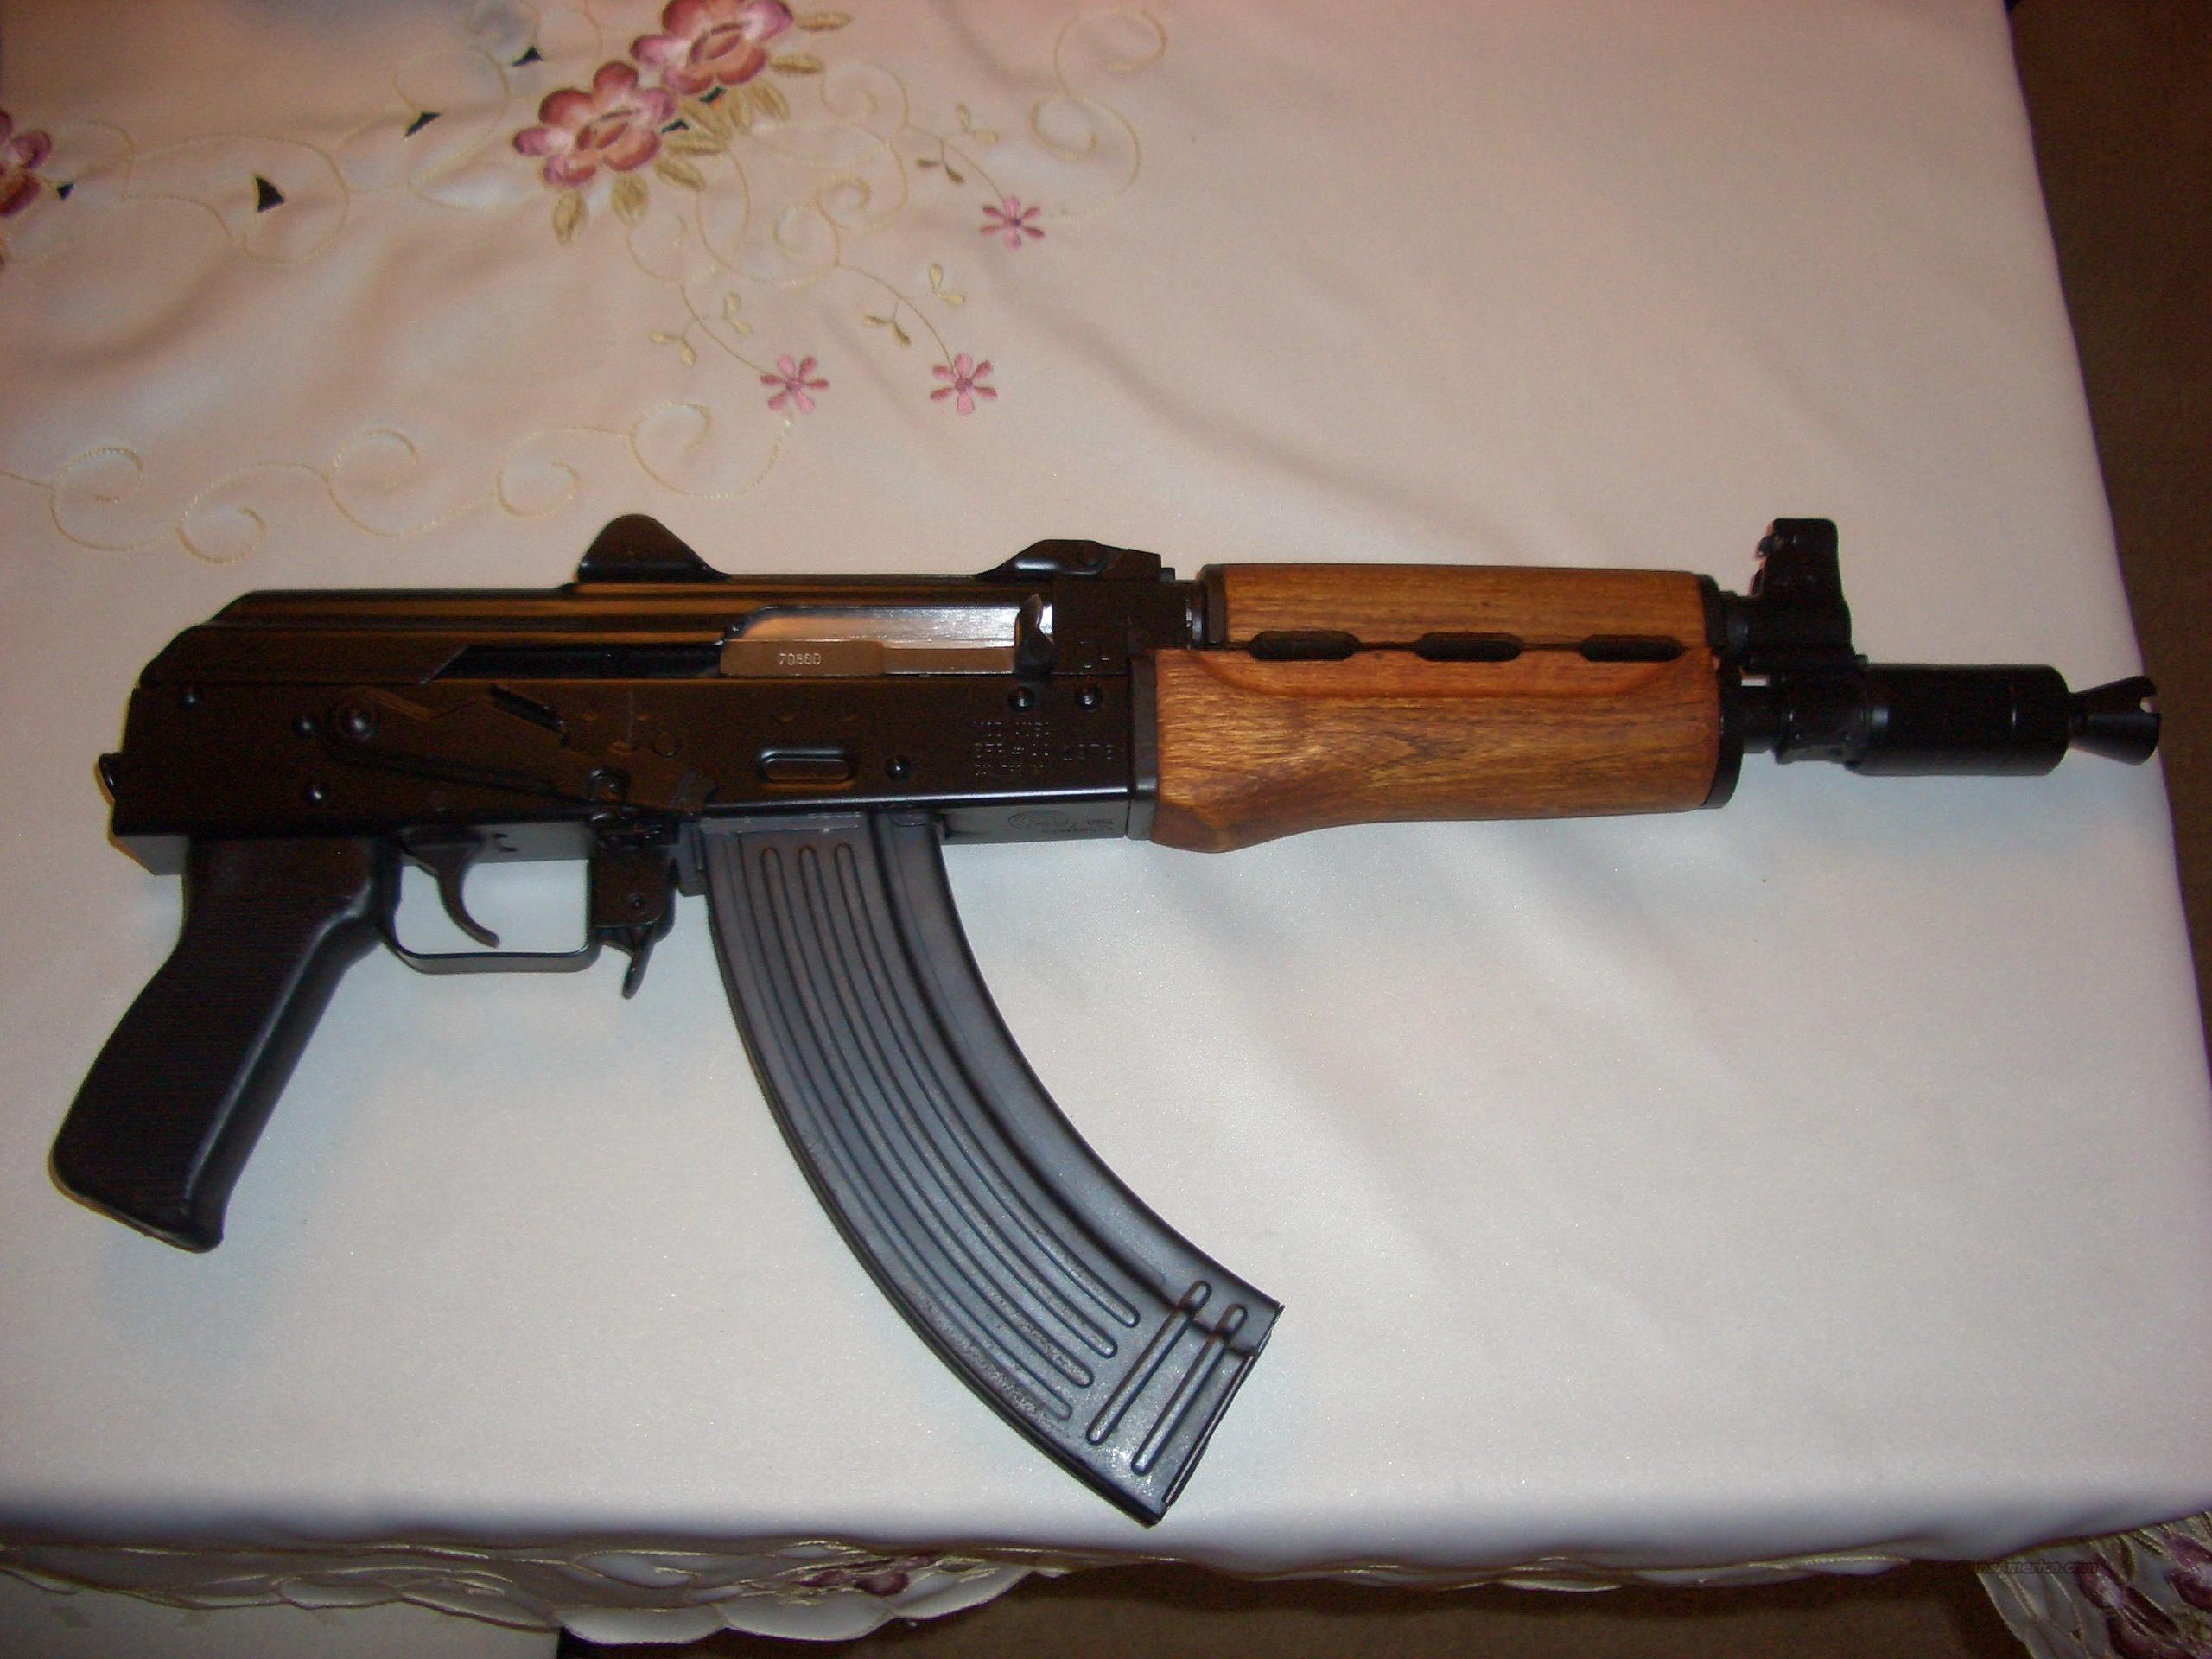 Yugo M92 Zastava Krinkov Pistol AK47 Armory  Guns > Rifles > AK-47 Rifles (and copies) > Full Stock